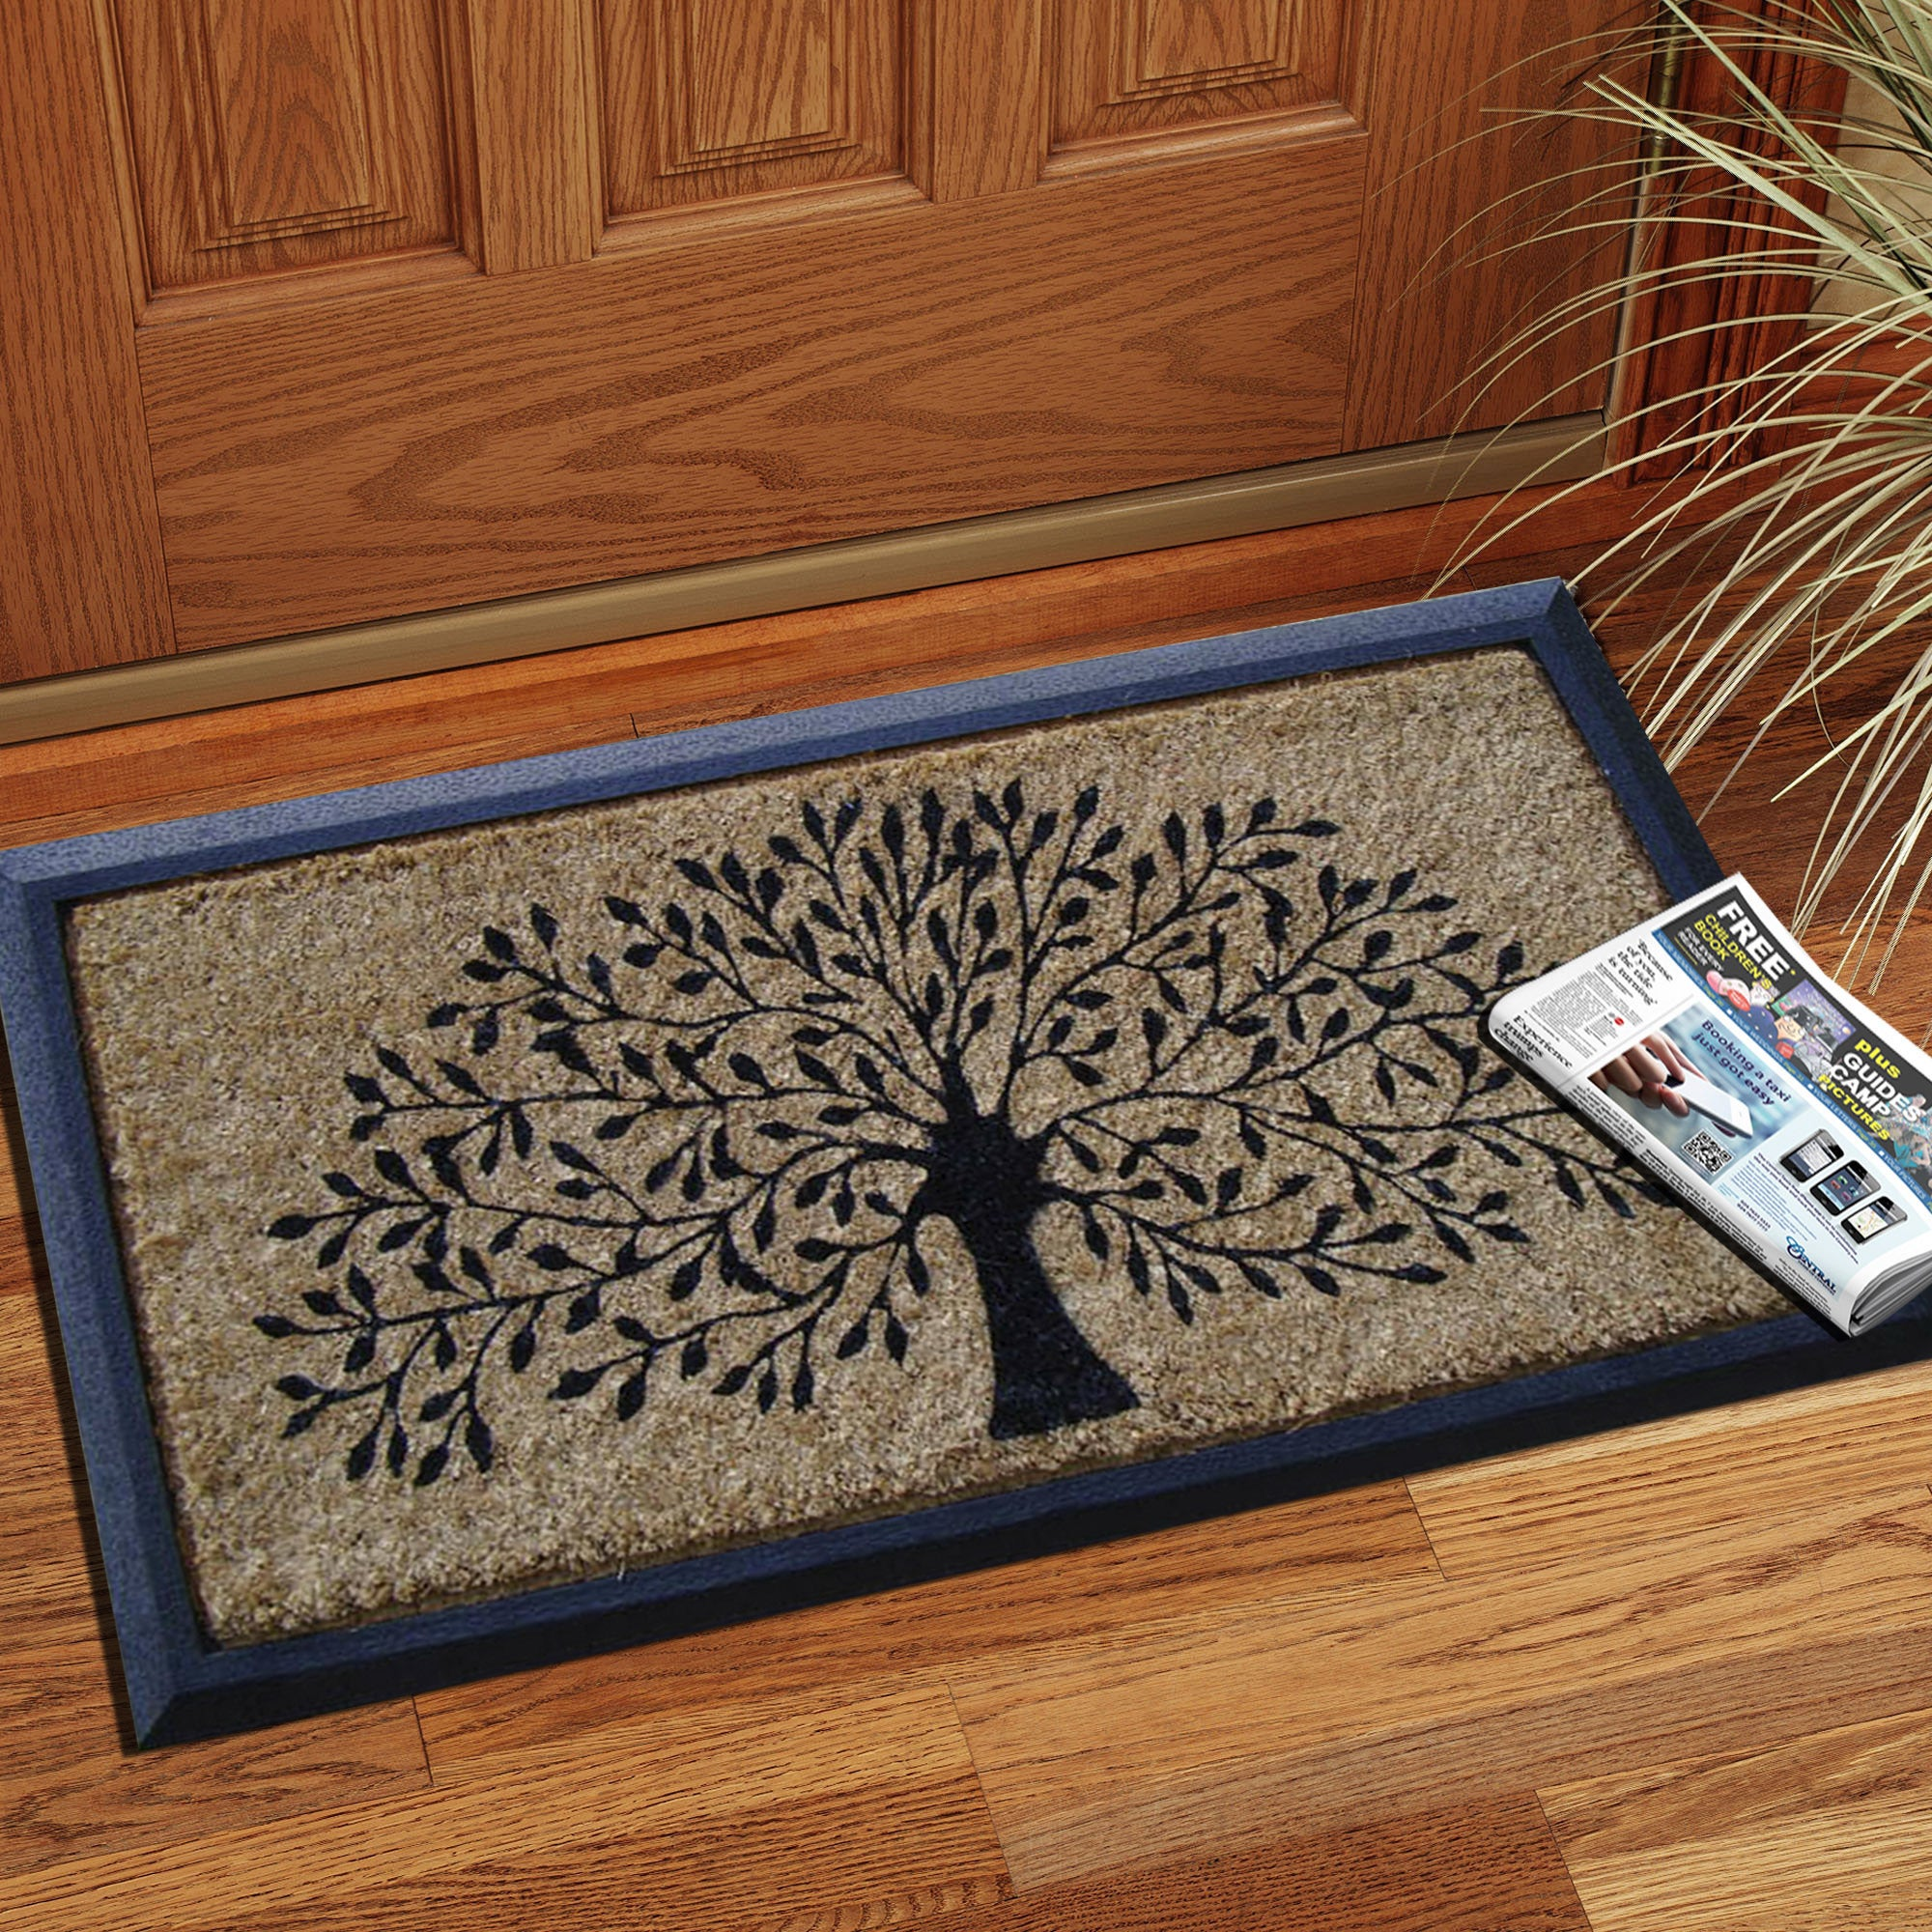 Hand Crafted Molded Rubber Coir Tree Double Door Mat 2 6 X 3 11 Free Shipping Today 9517703